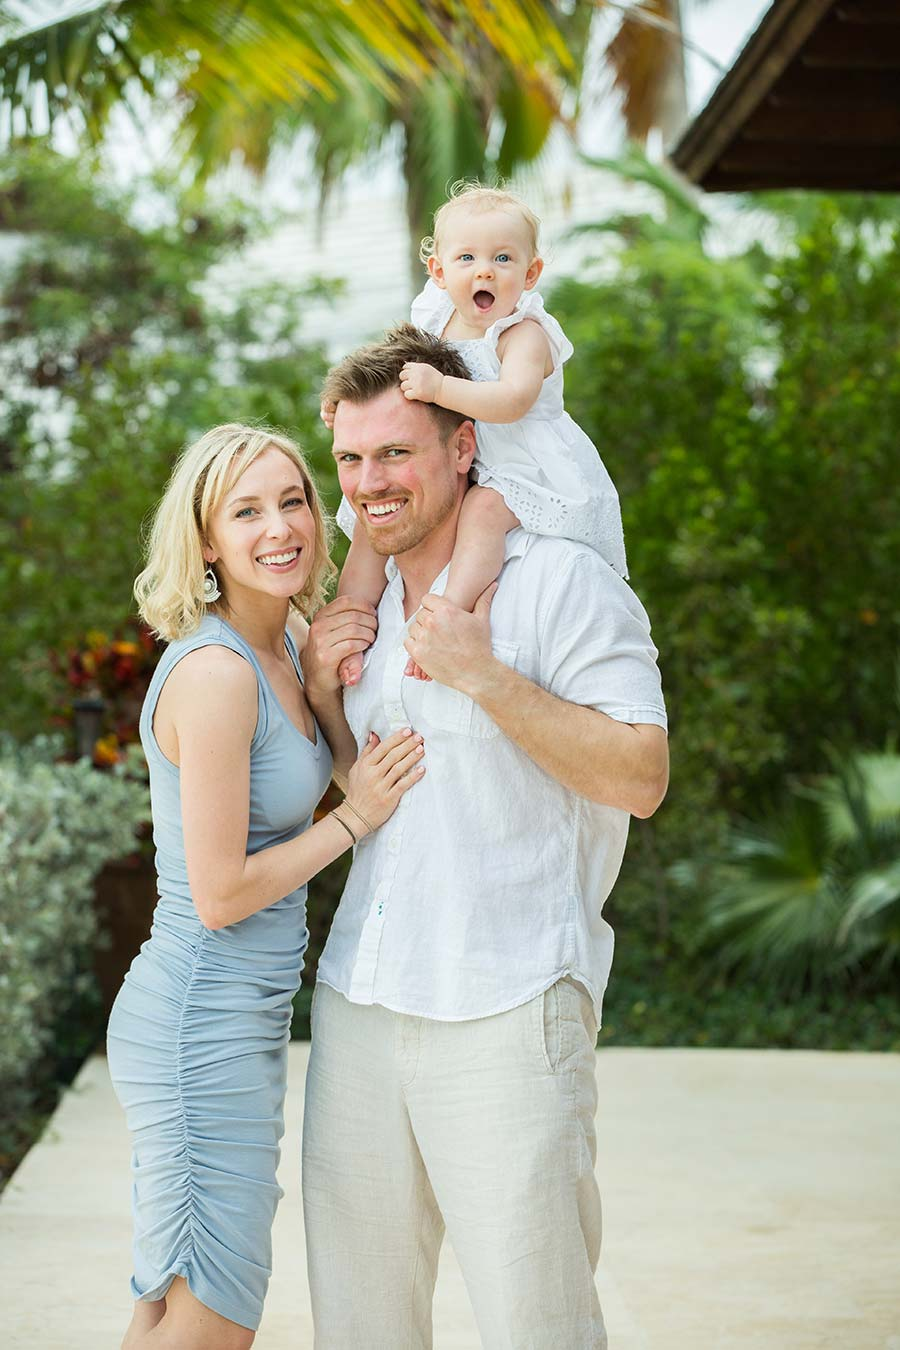 Family - Why Choose Portrait Photographer Turks and Caicos